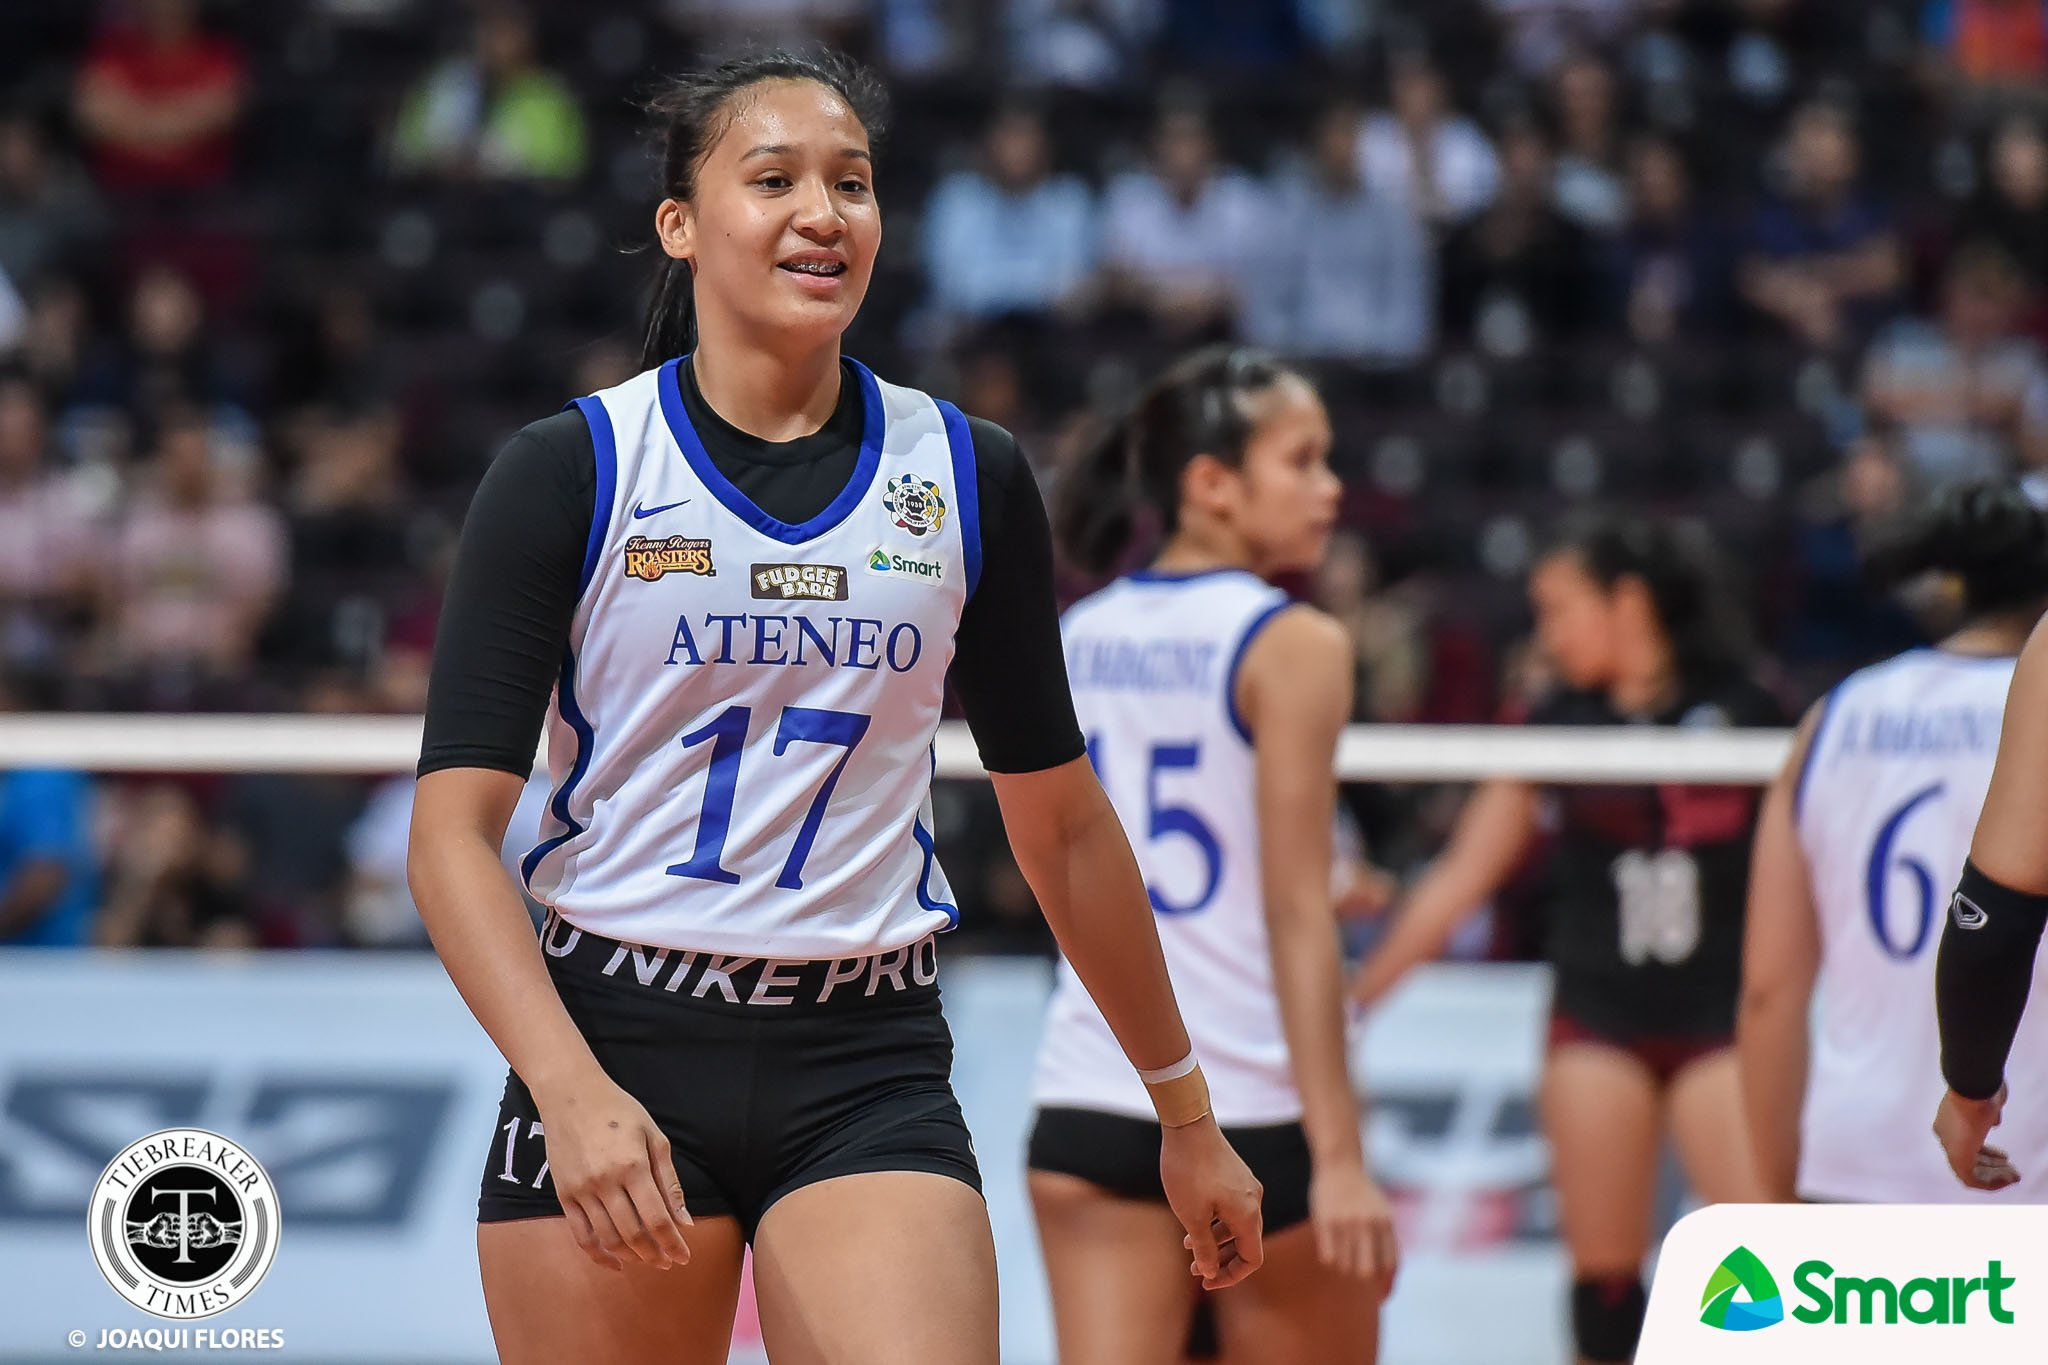 Tiebreaker Times Faith Nisperos grateful to Ateneo for preparing her in first collegiate game ADMU News UAAP Volleyball  UAAP Season 82 Women's Volleyball UAAP Season 82 Faith Nisperos Ateneo Women's Volleyball